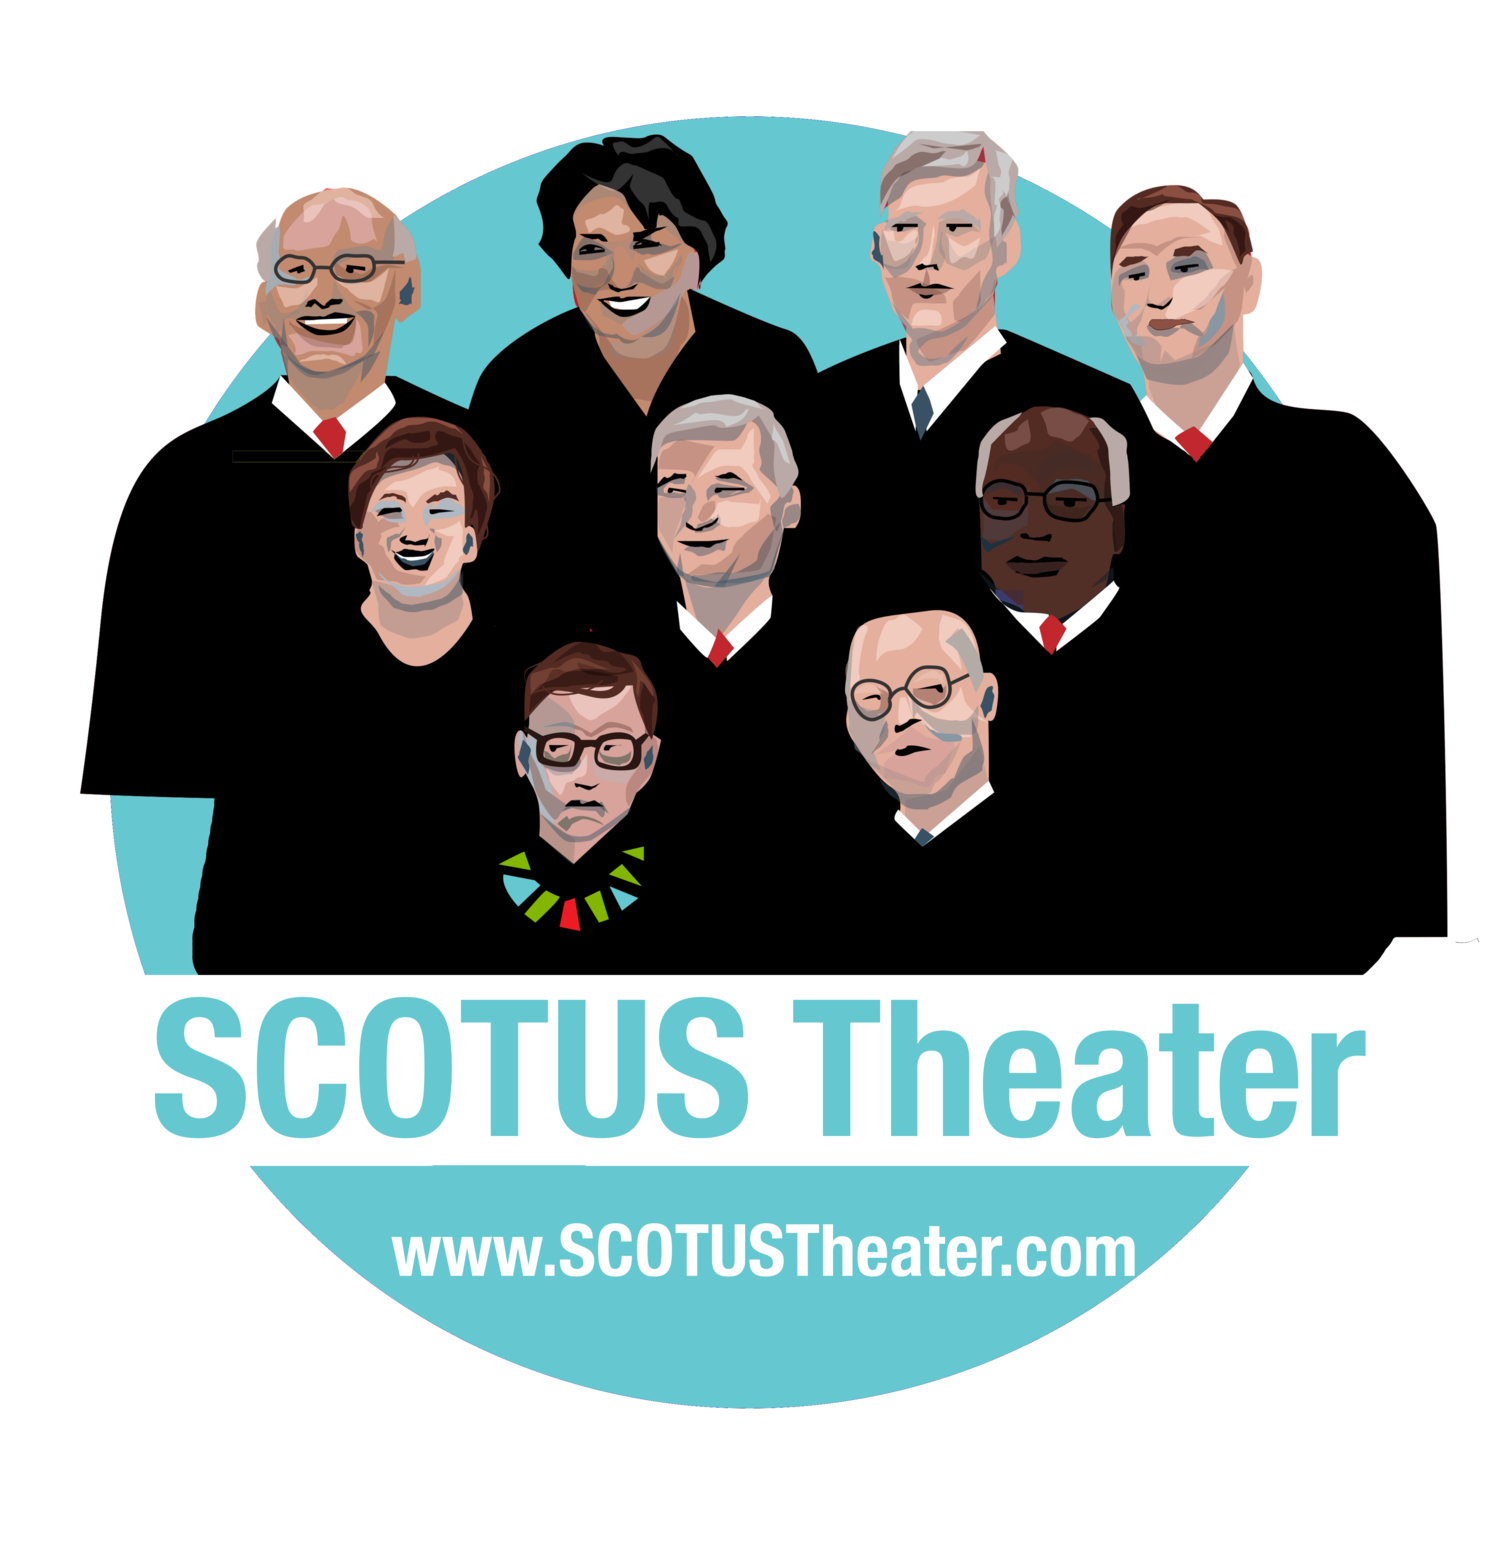 SCOTUS Theater